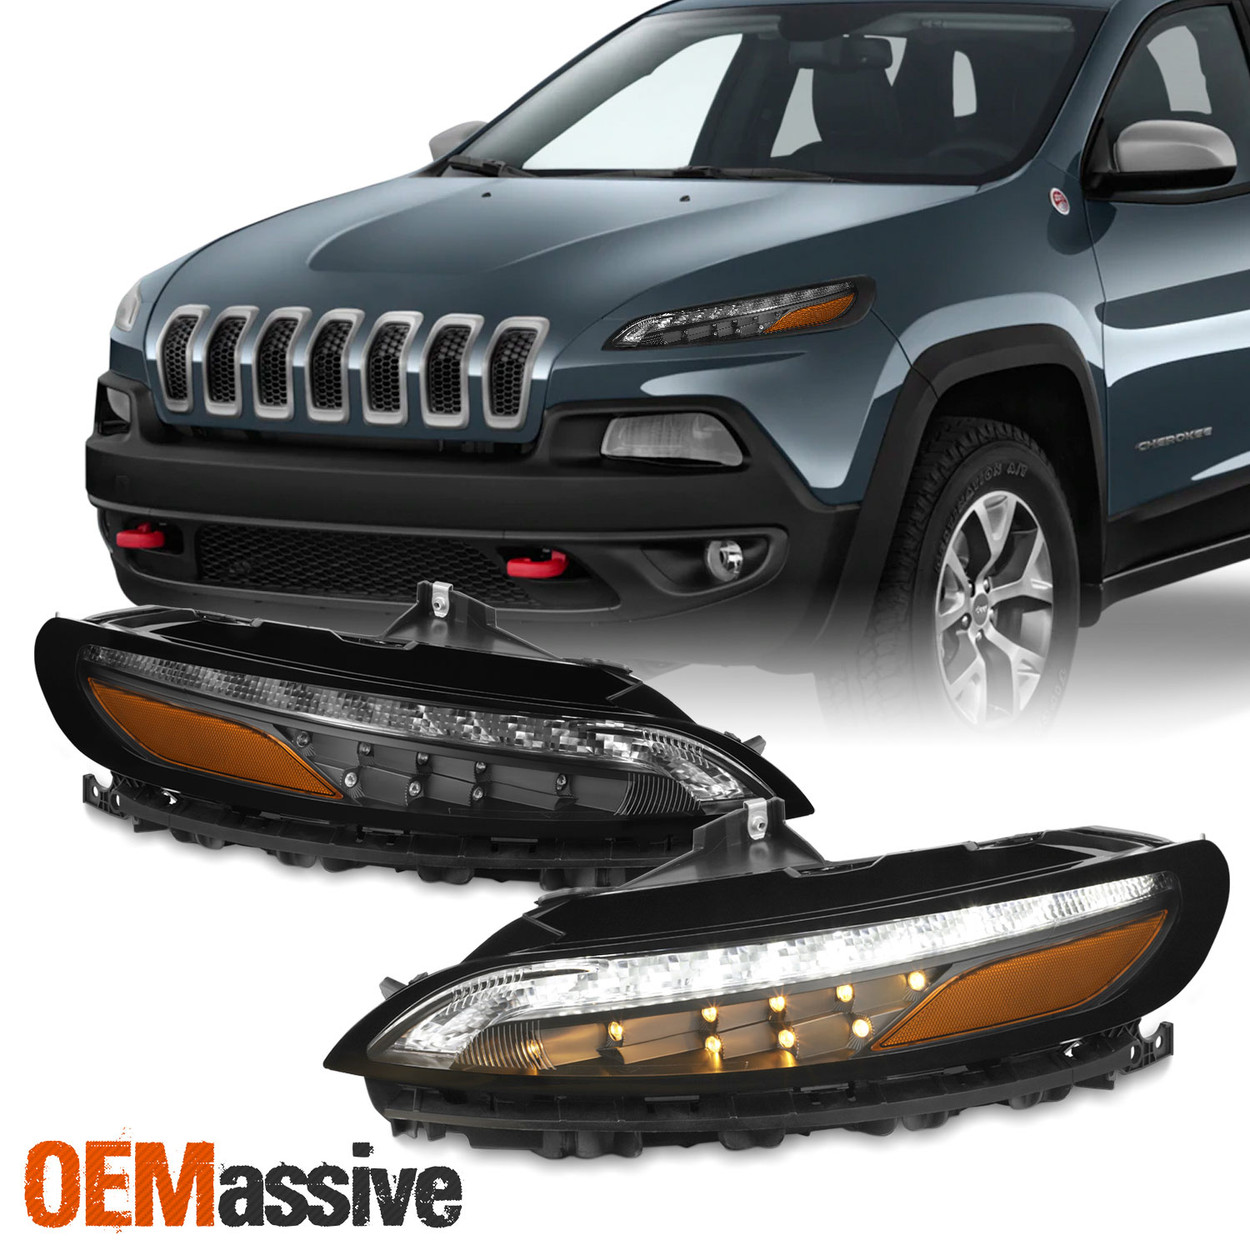 1 Pair Auto Car Rear Bumper Fog Light Reflector Lamp For Jeep Cherokee 2014-2018